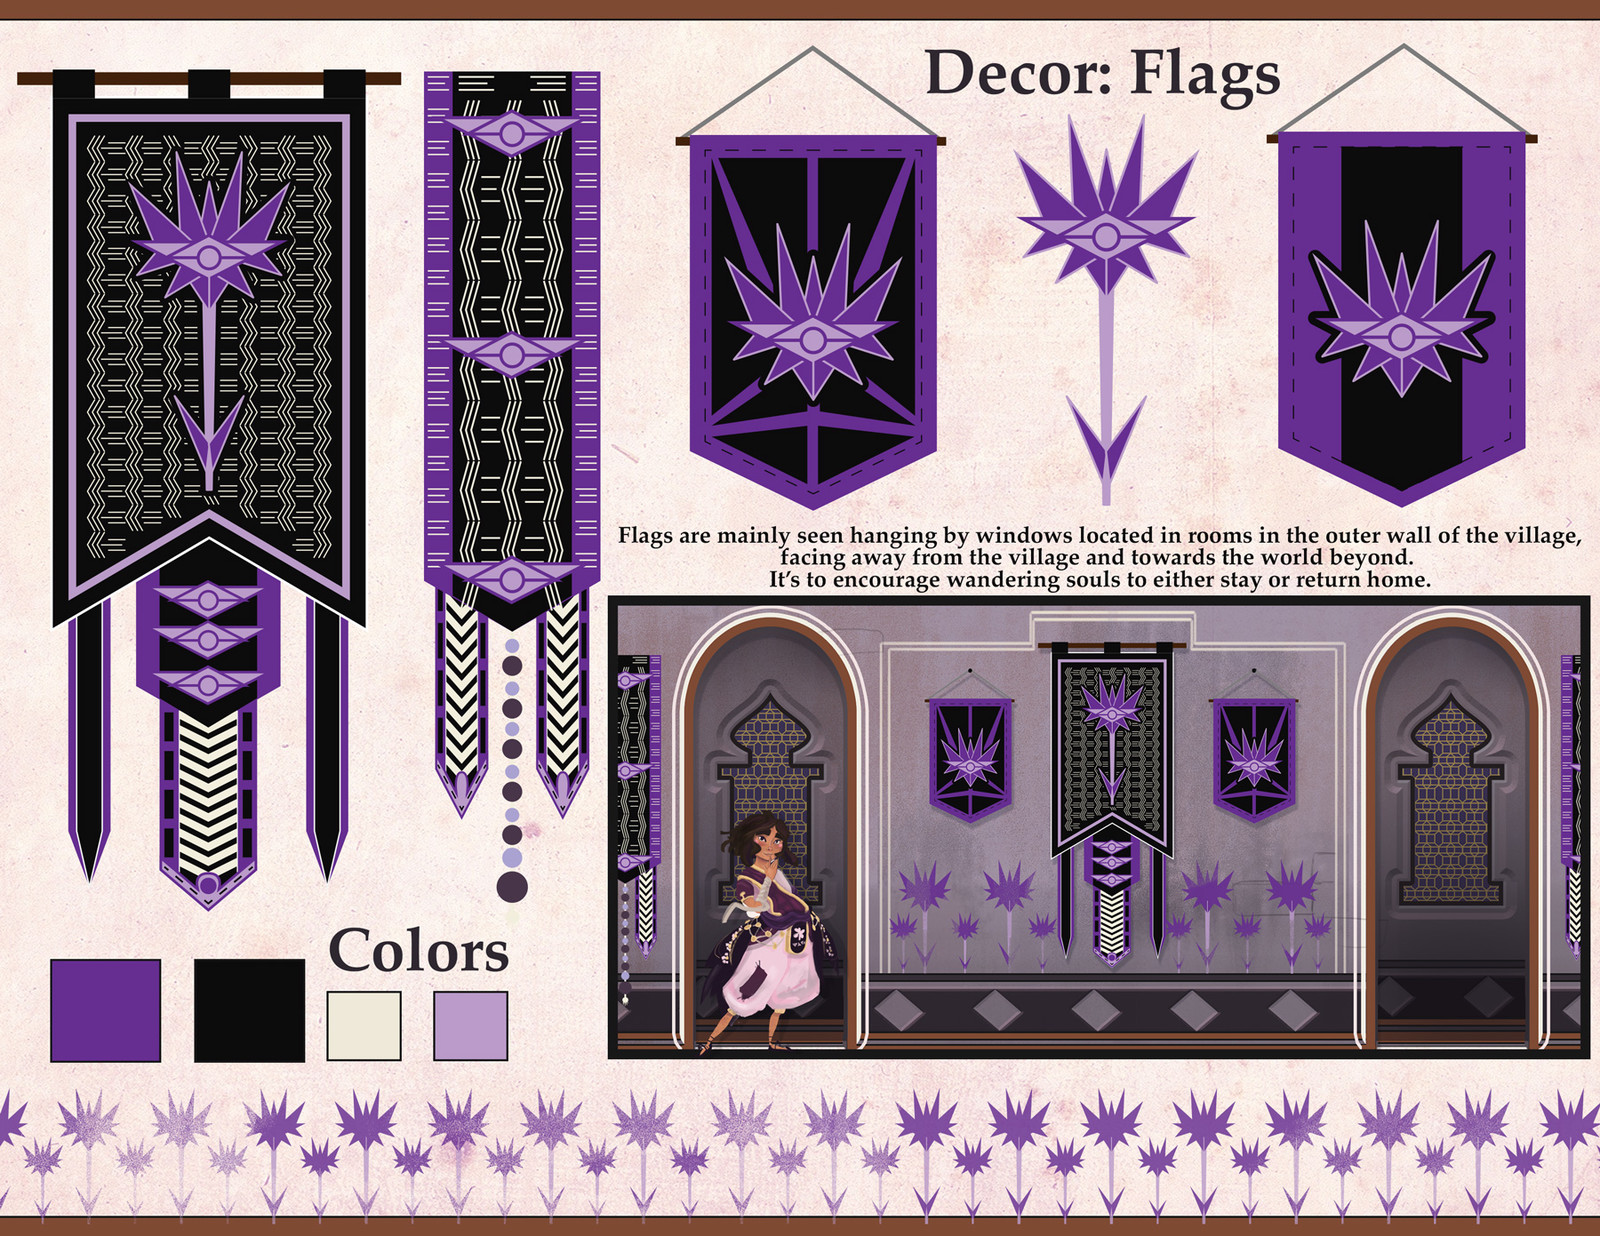 Flags are mainly seen hanging by windows located in rooms in the outer wall of the village, facing away from the village and towards the world beyond.  It's to encourage wandering souls to either stay or return home.